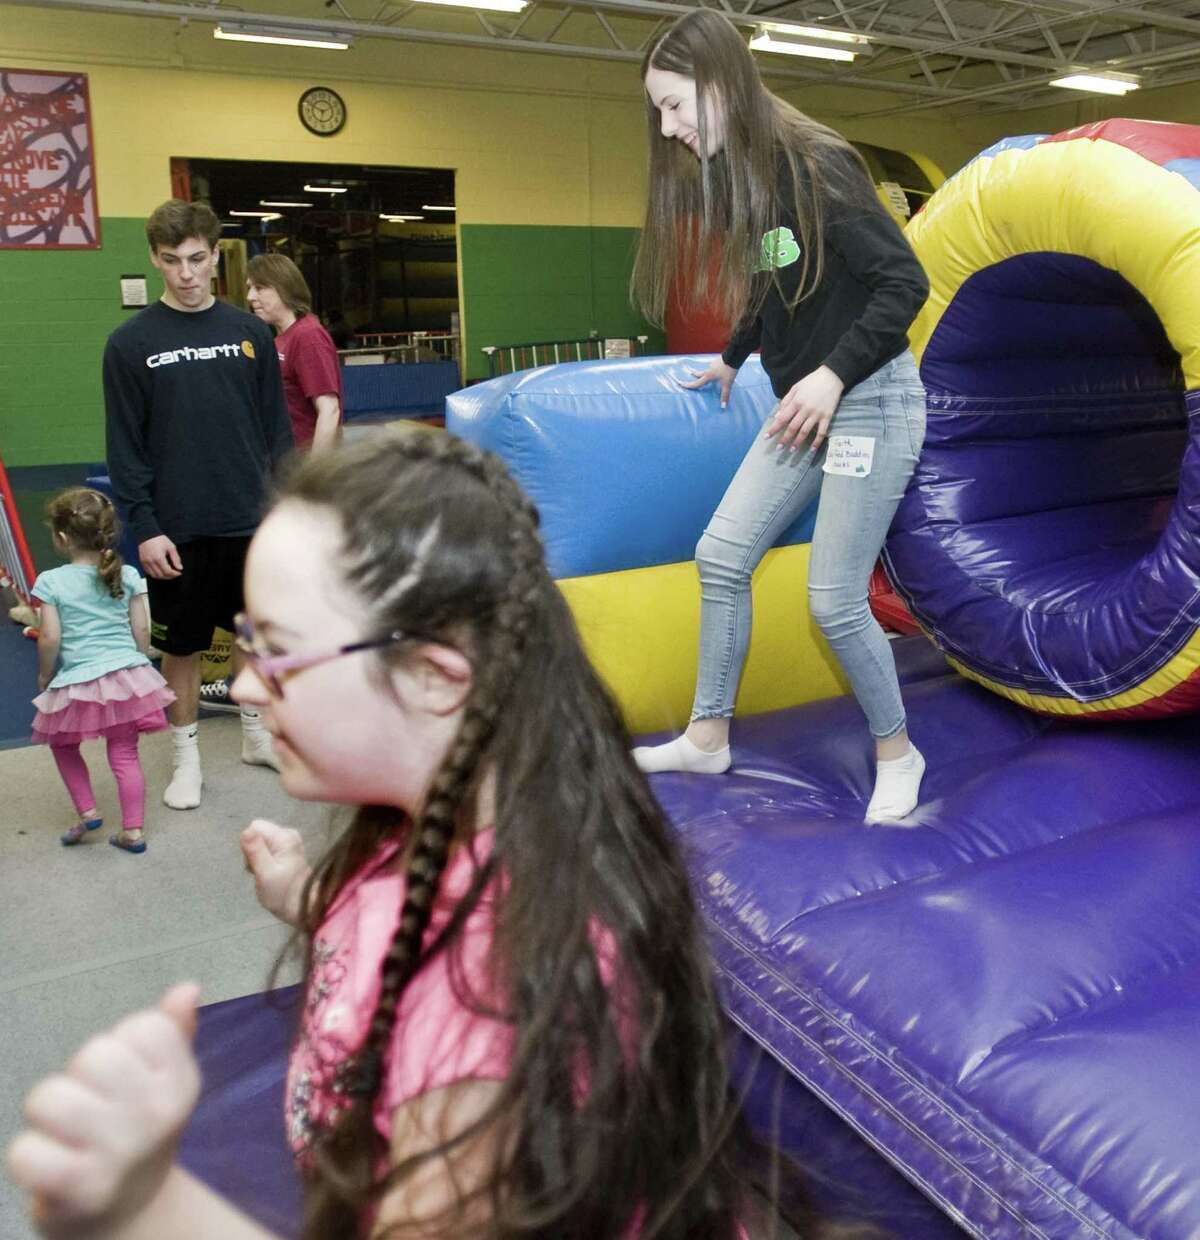 Kally Trudeau, 13 of New Milford, comes out of the Obstacle Course at the Children's Movement Center with New Milford High School sophomore Faith Rosenhagen, right, as part of the high school's Unified Buddies program. Monday, April 3, 2017